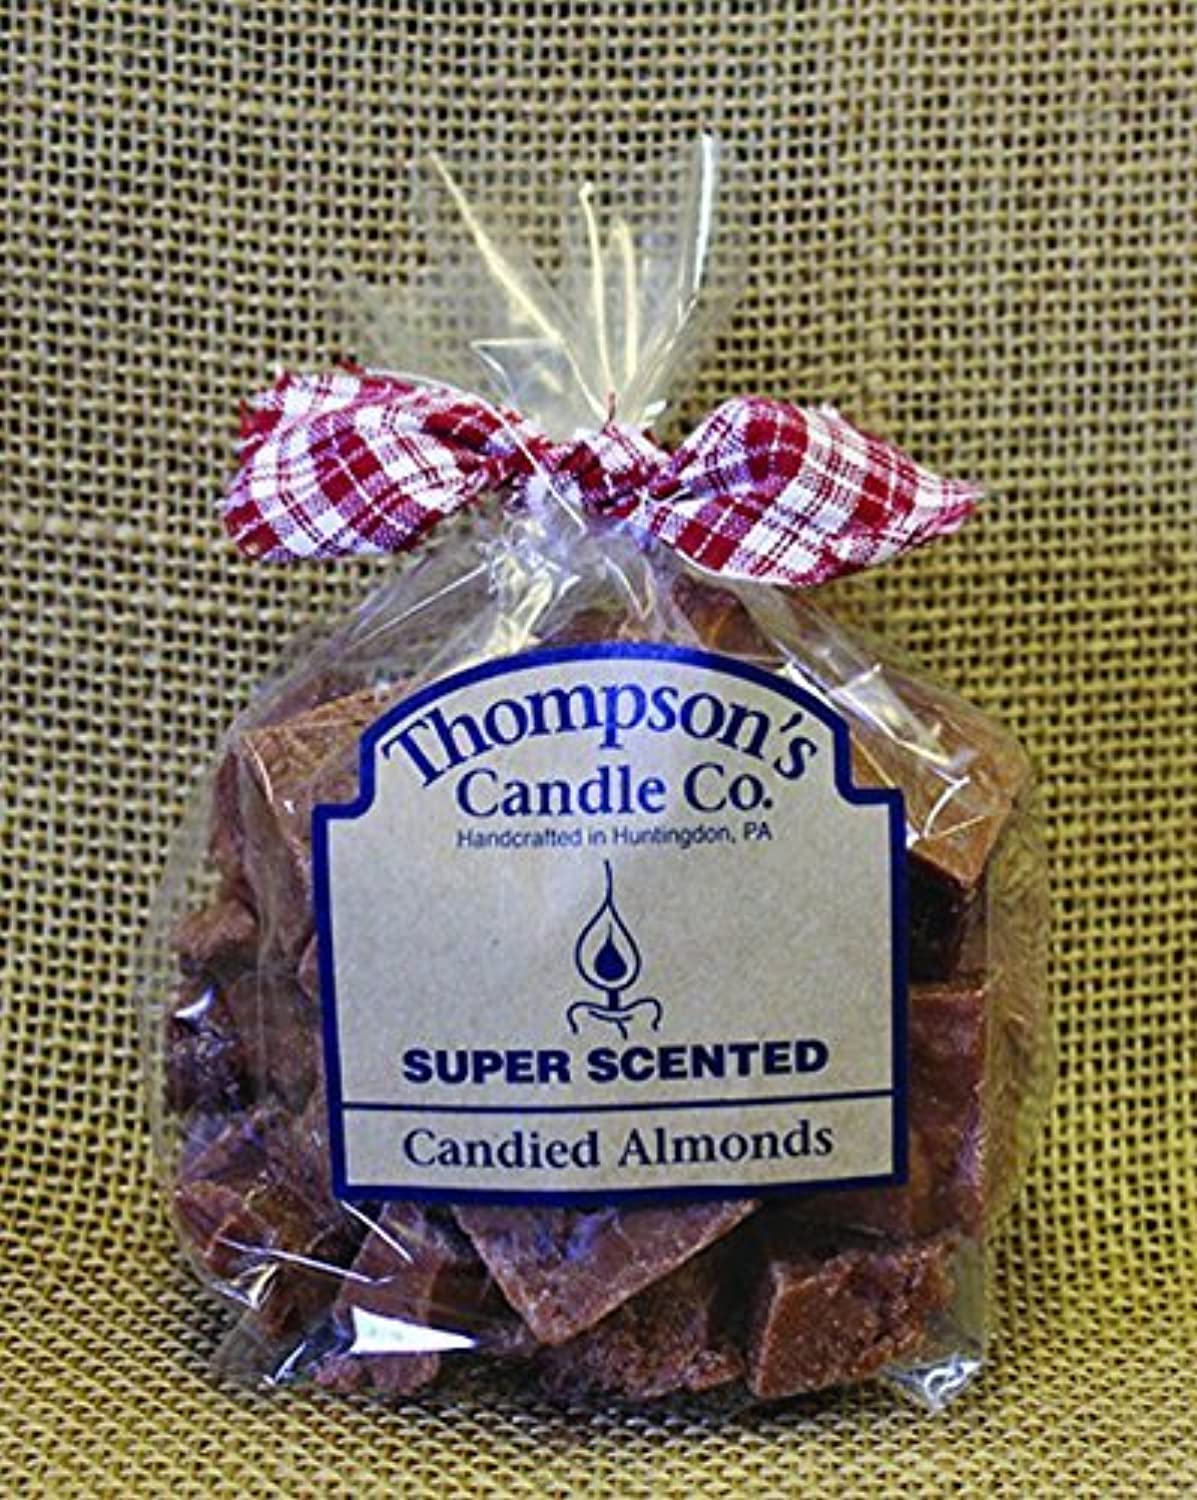 Thompson's Candle Co Super Scented Crumbles/Tarts/Wax Melts 6 oz Candied Almonds [並行輸入品]